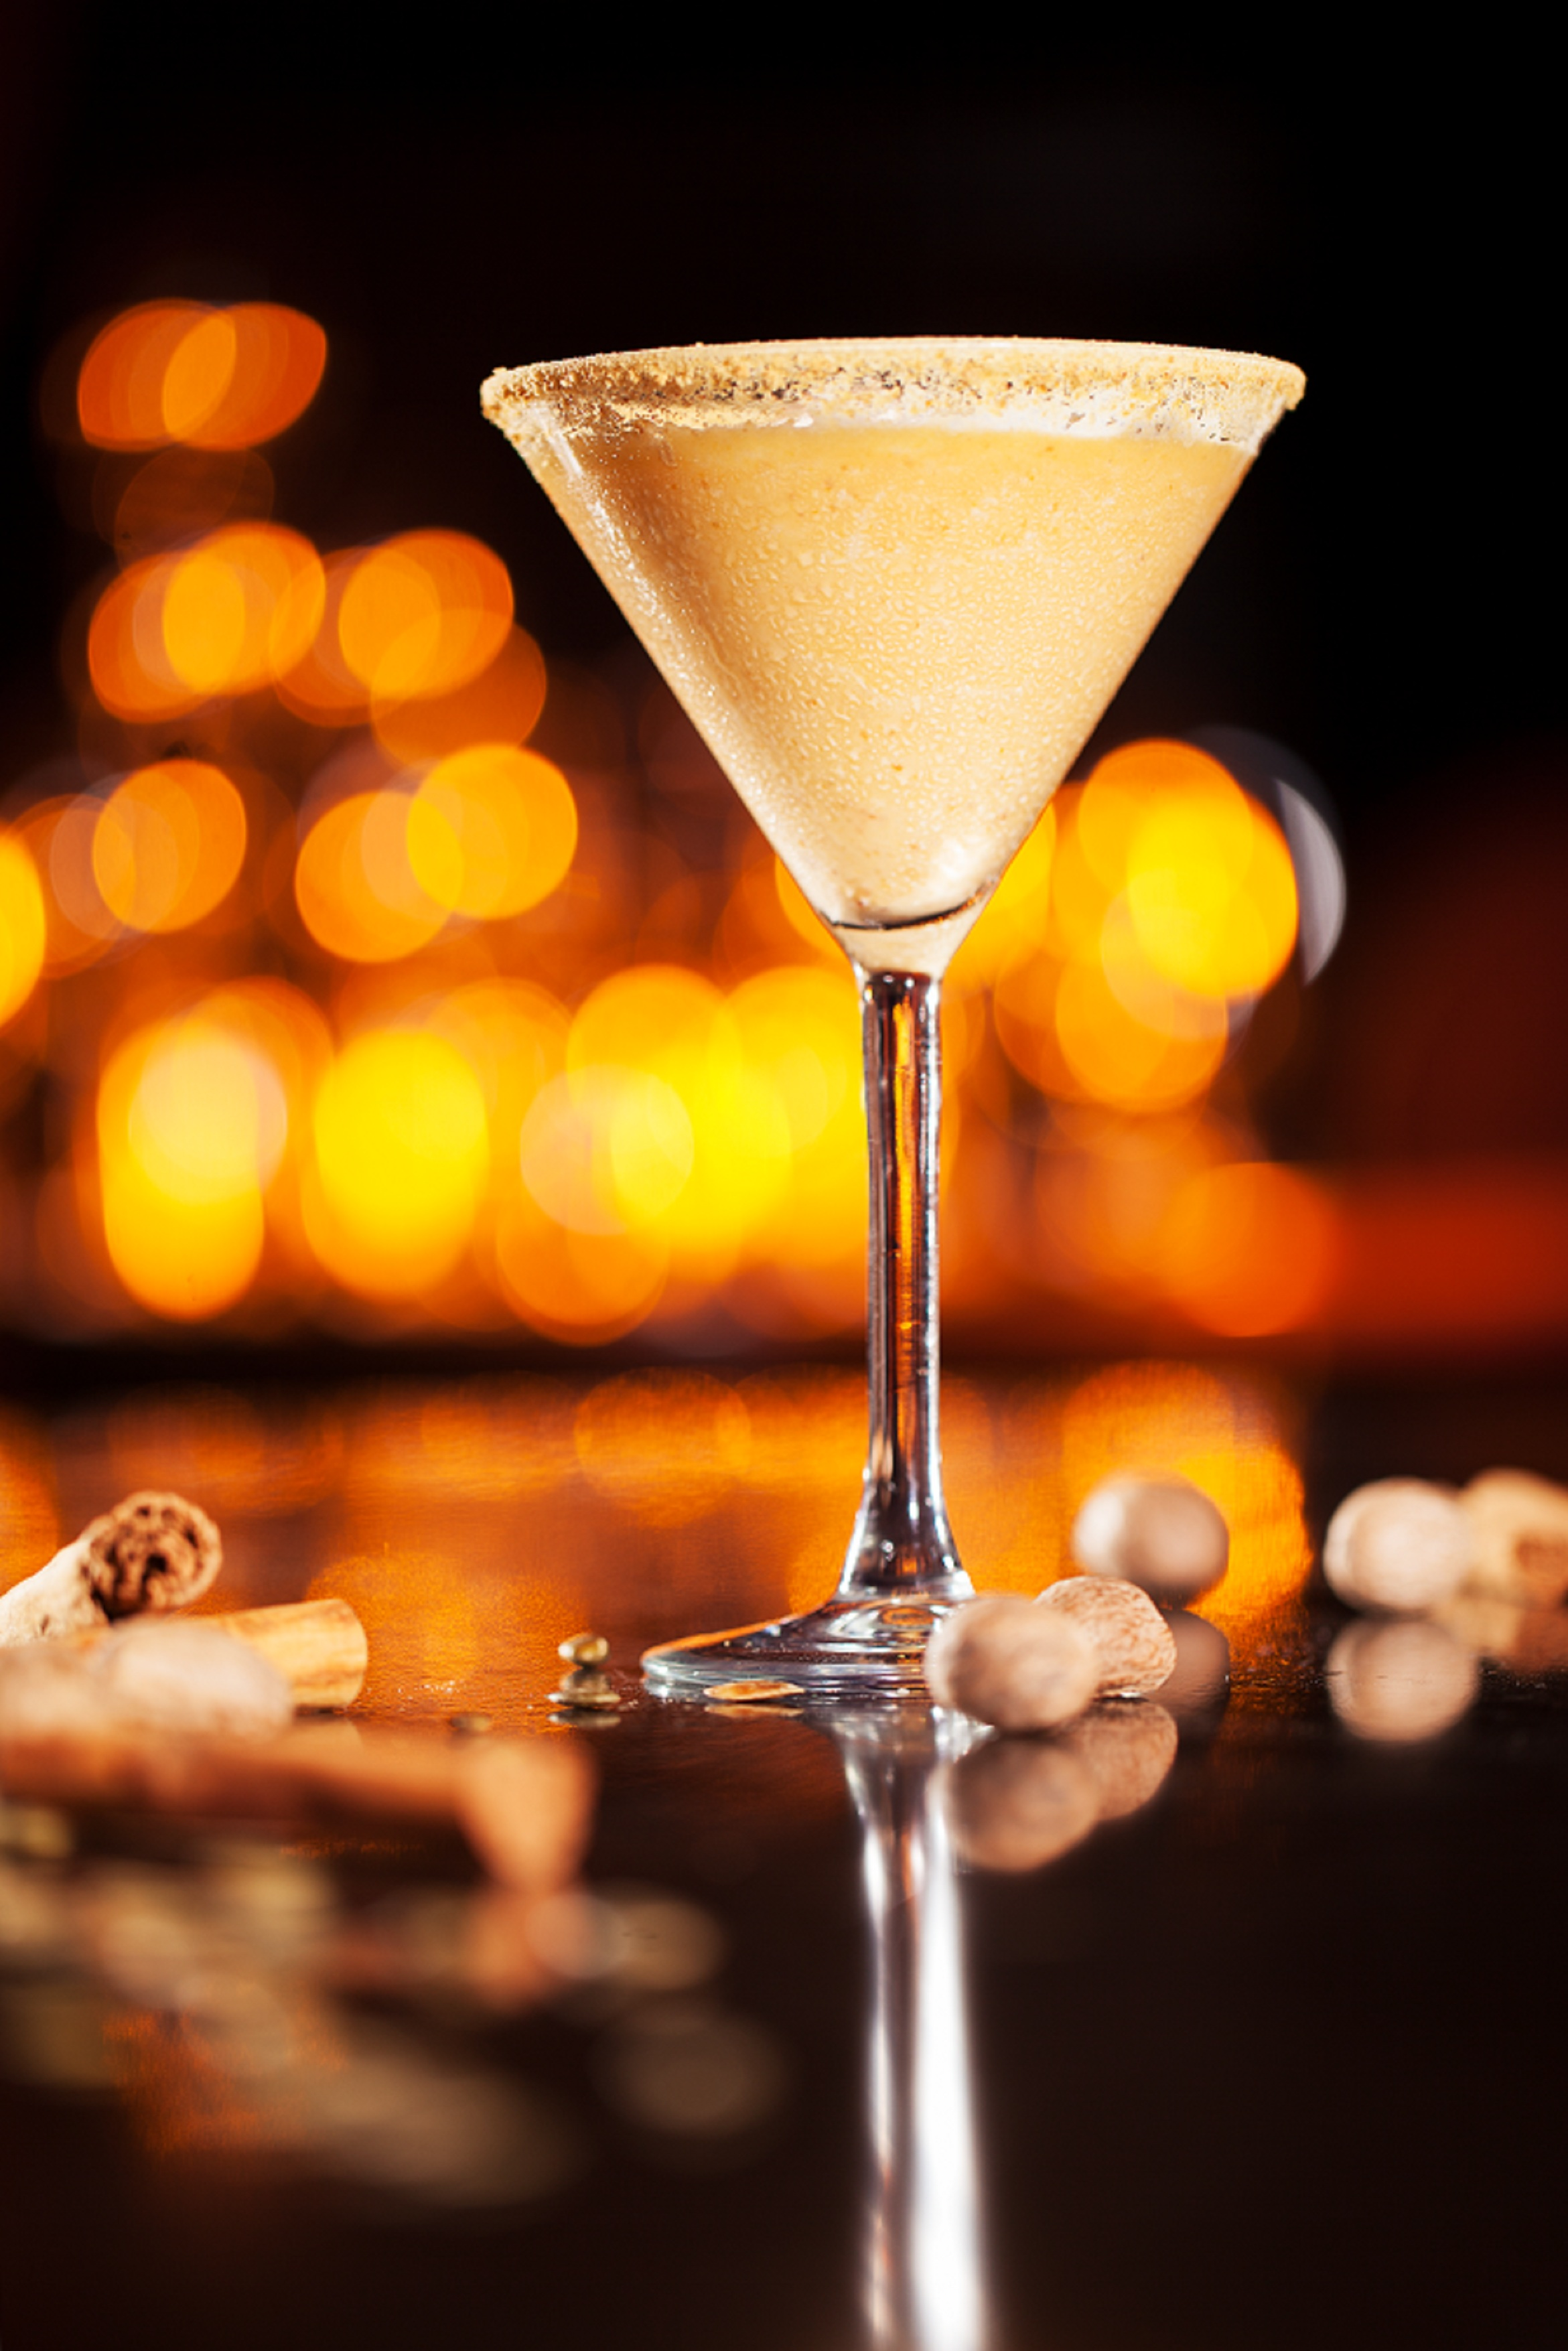 ... spirits to election libations, try these fun Vegas fall cocktails